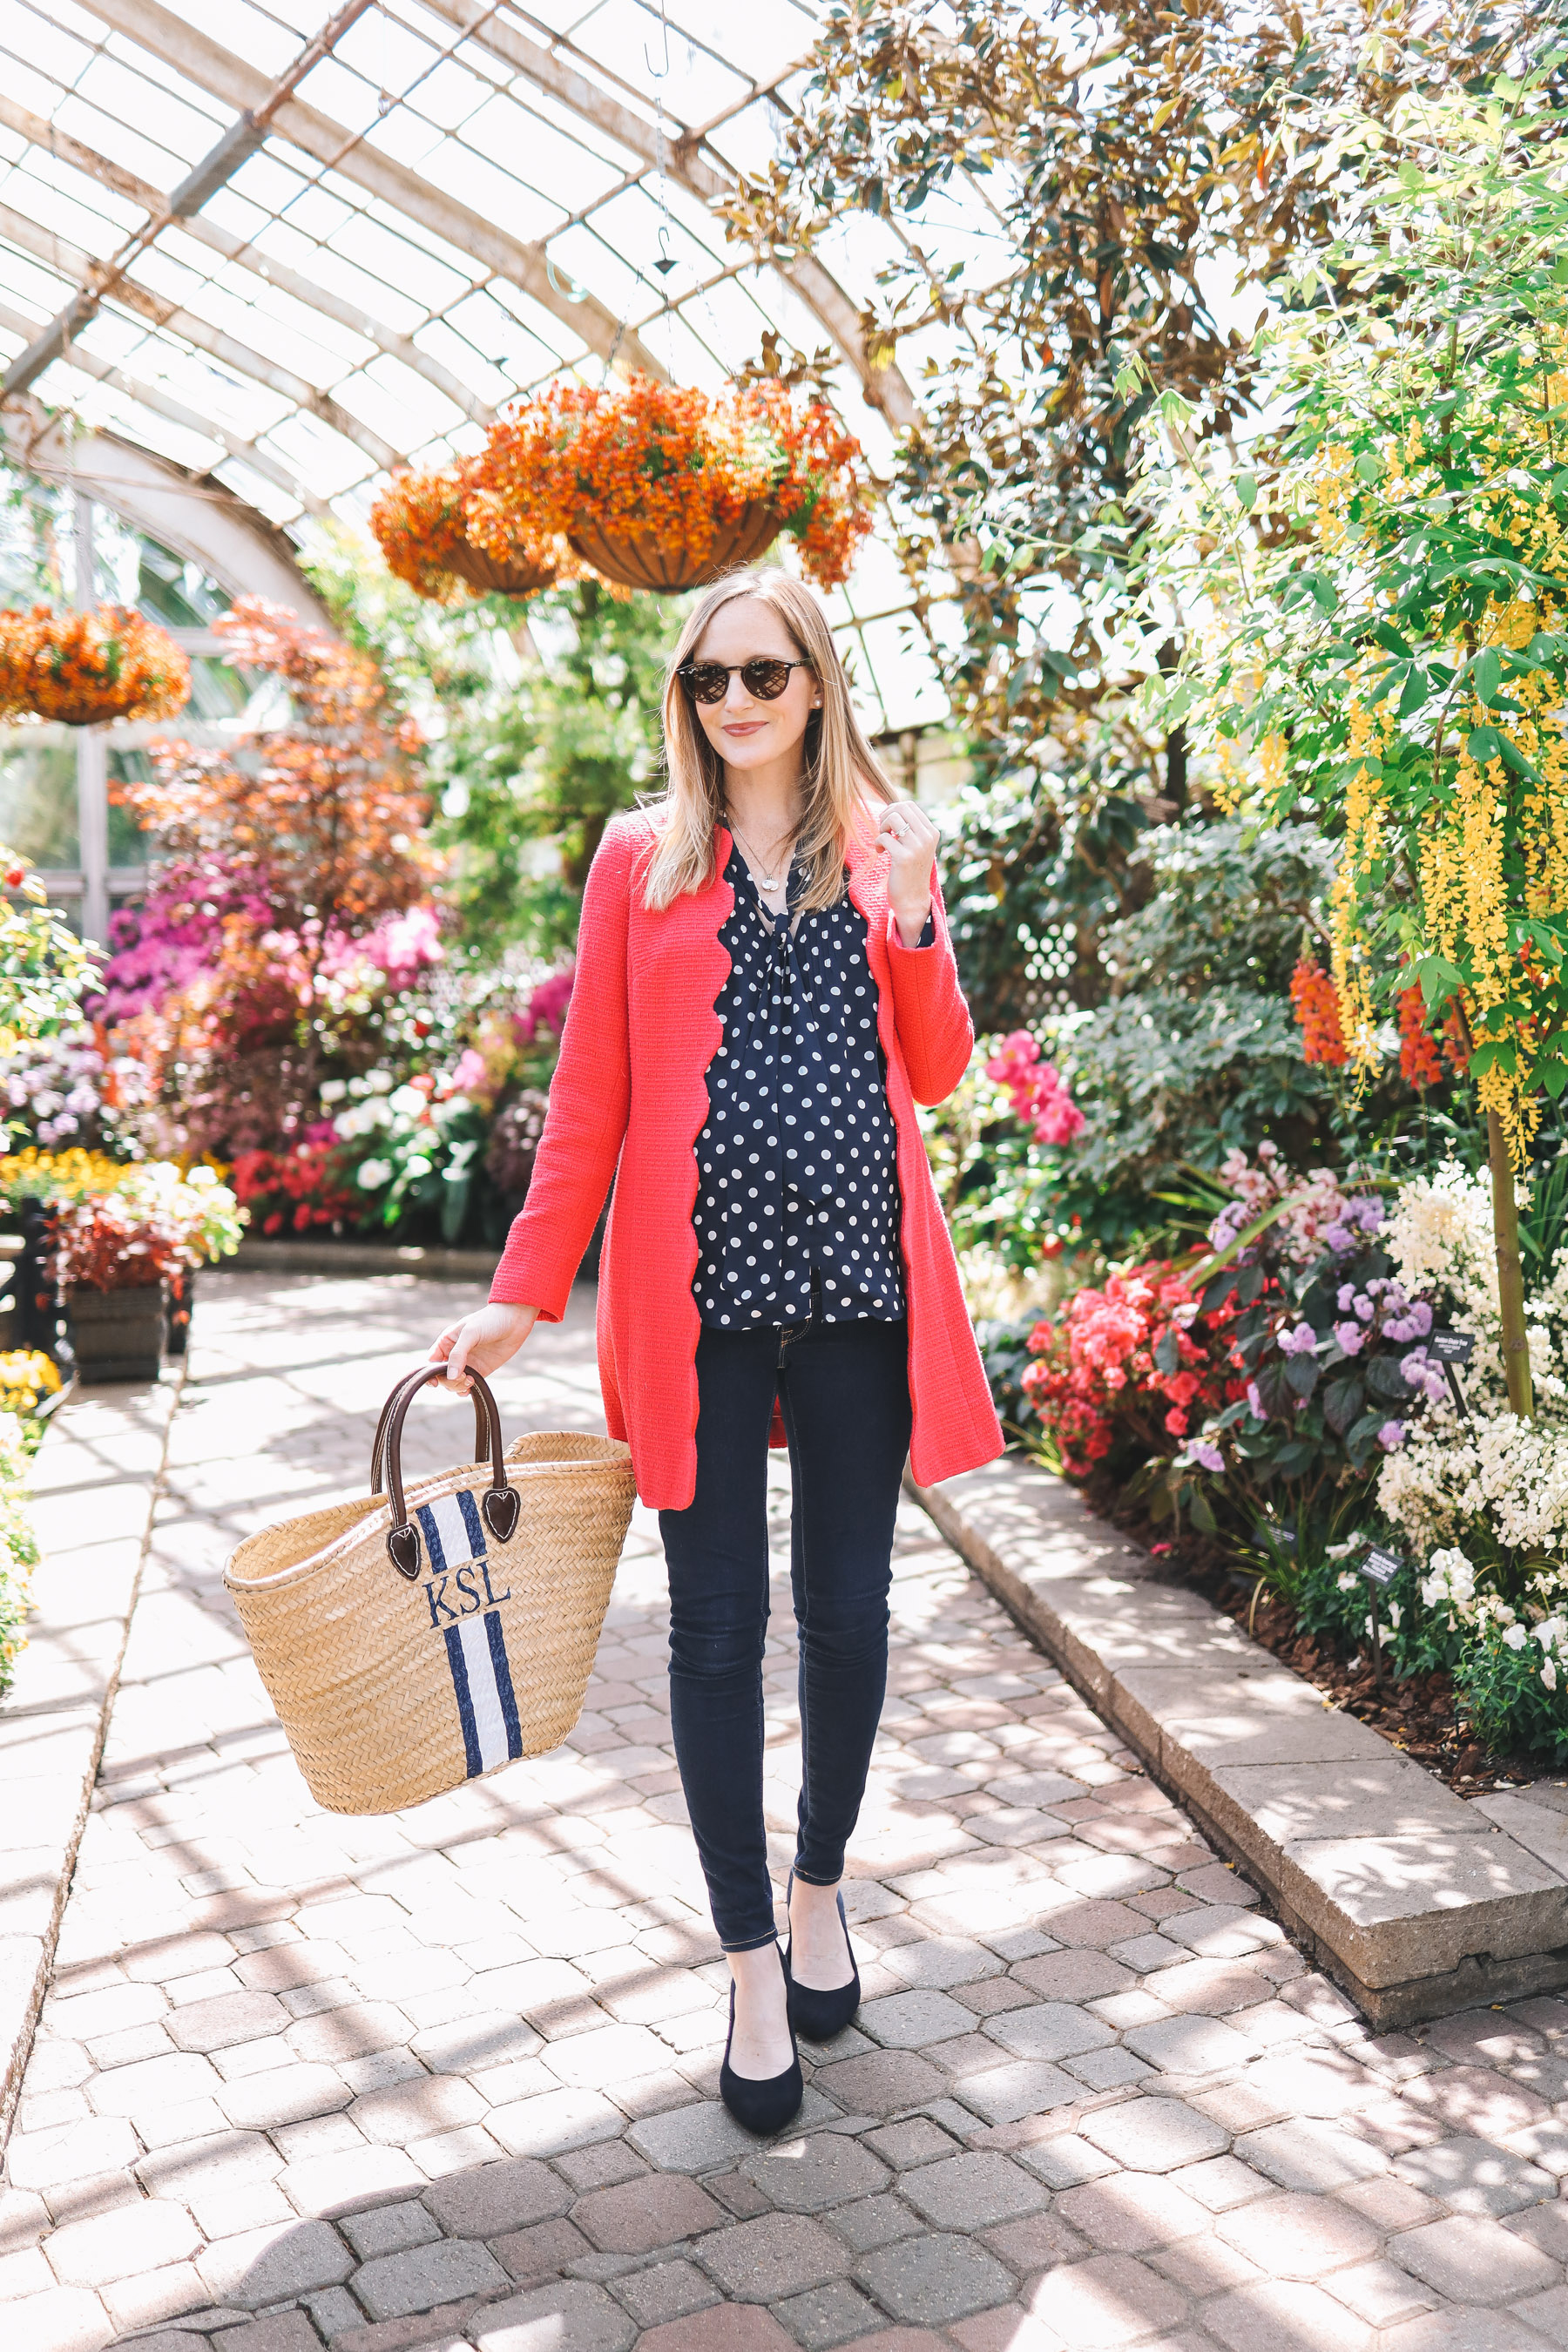 Kelly Larkin's outfit details: Scalloped Coat / Evolve Navy Pumps c/o / Mark & Graham Hand-Painted Tote / Newer J.Crew Polka Dot Machine-Washable Top / Mark & Graham Stamped Initial Necklace / Ray-Ban Sunglasses / Old Navy Rockstar Jeans